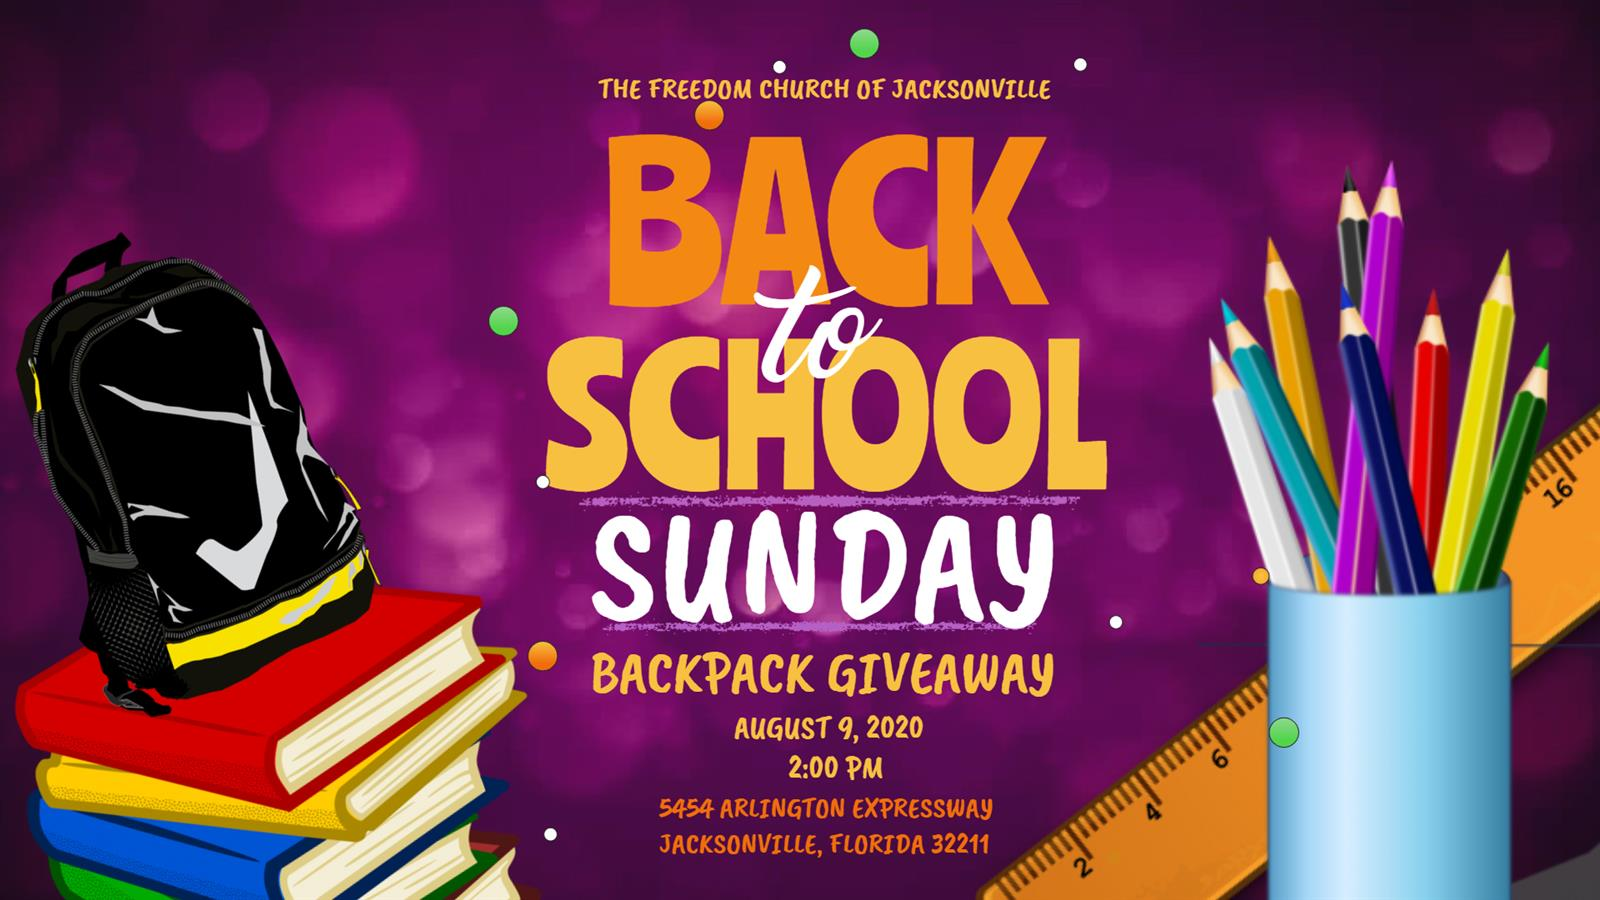 BACK-TO-SCHOOL BACKPACK GIVEAWAY